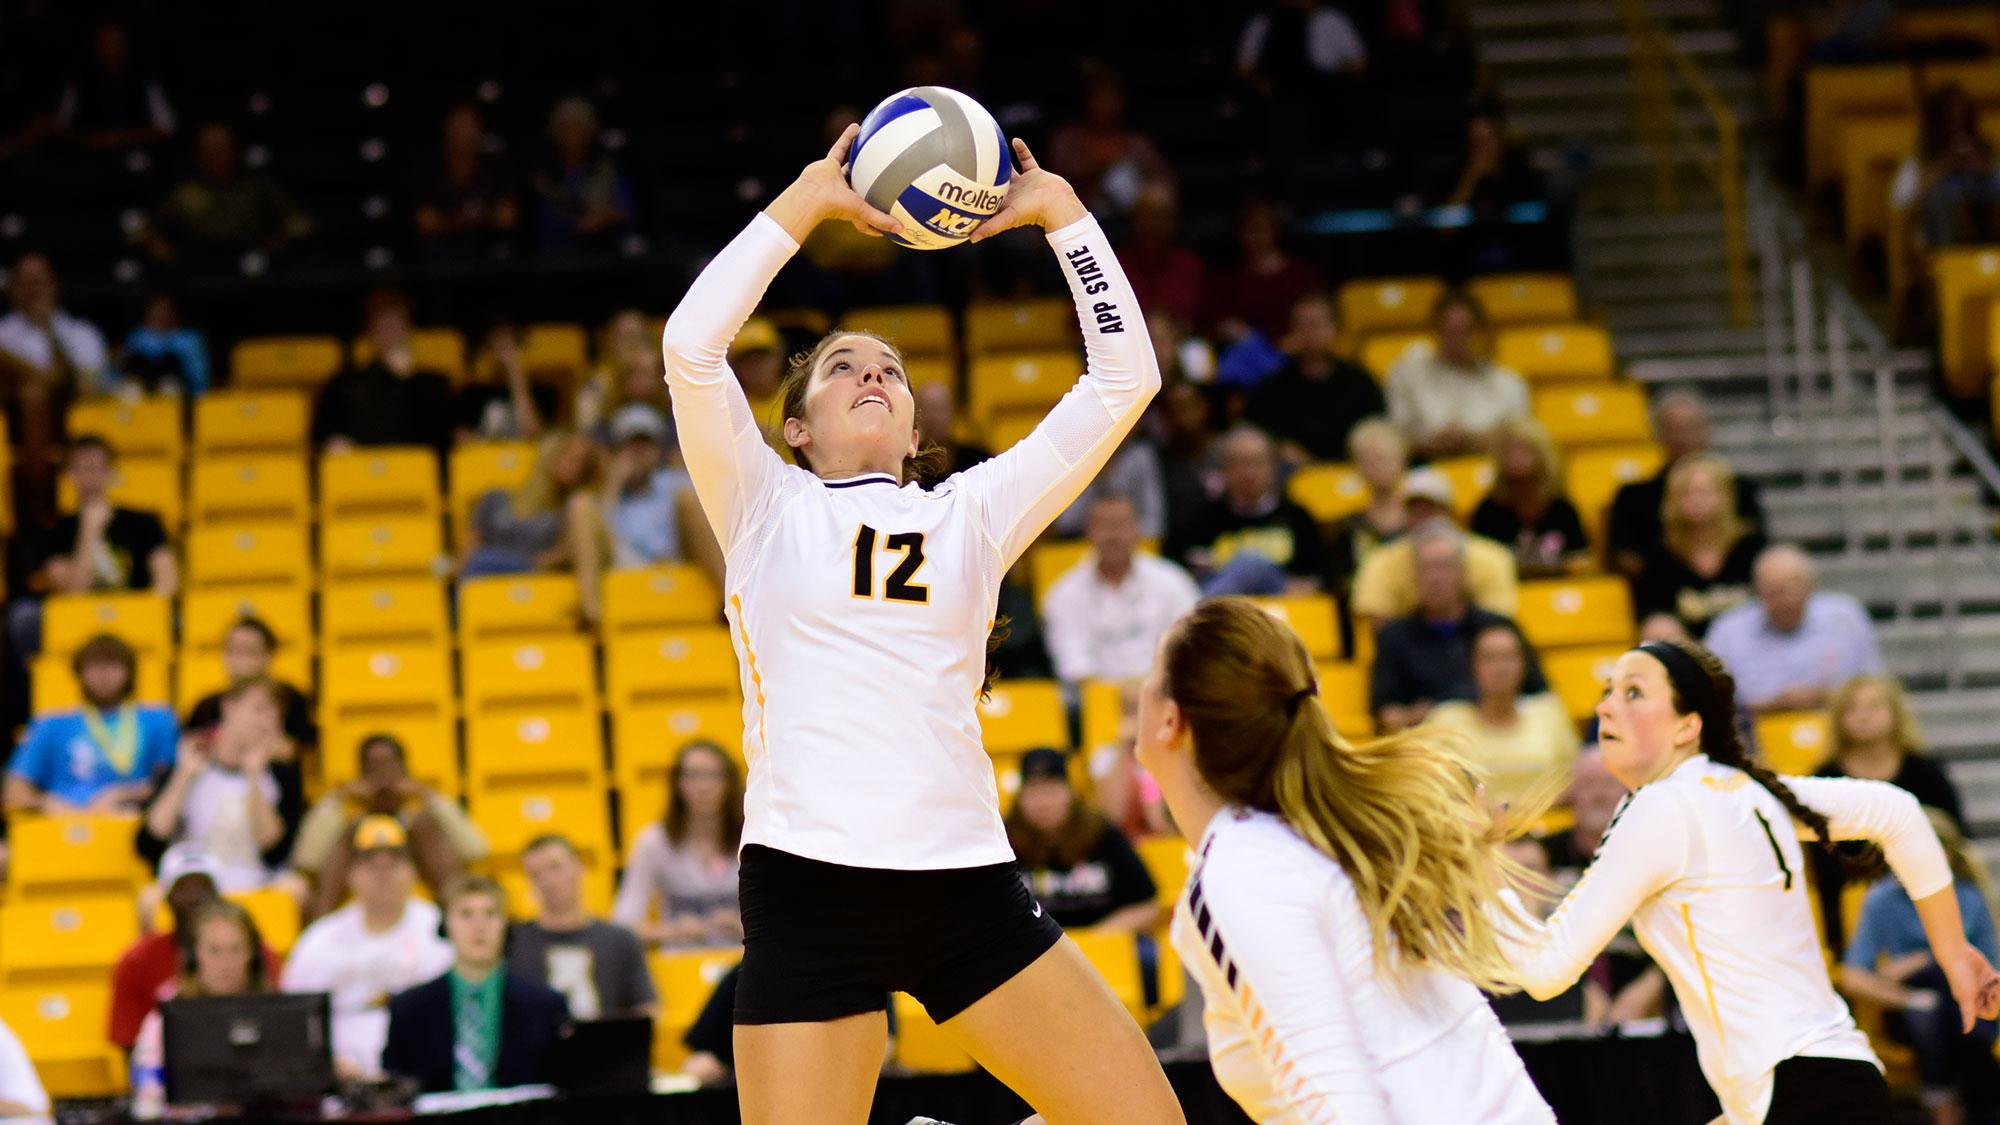 Volleyball extends win streak to 10